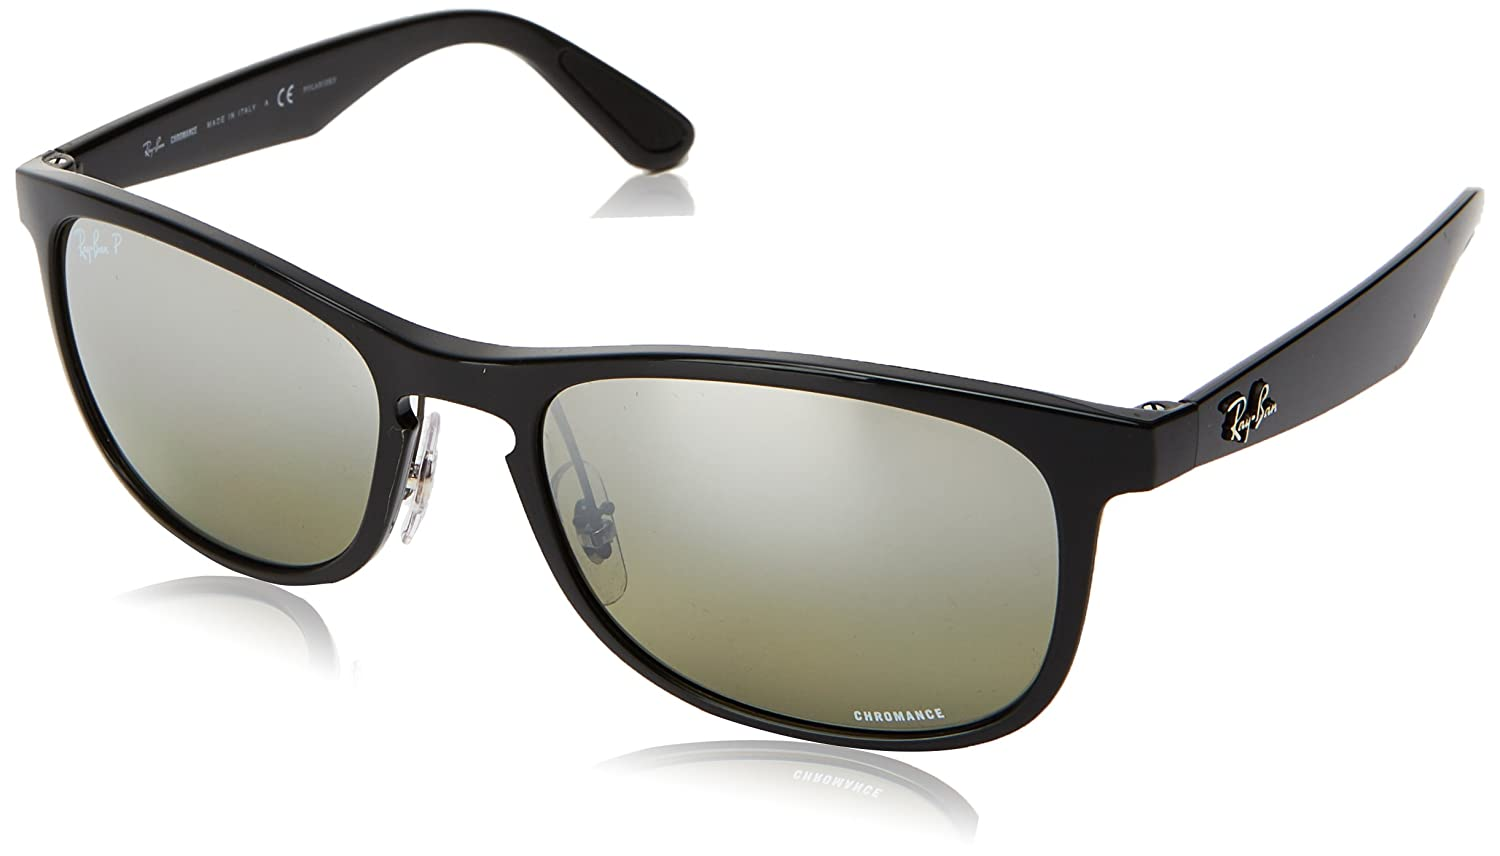 Ray Ban Rb4263 Sunglasses by Ray Ban